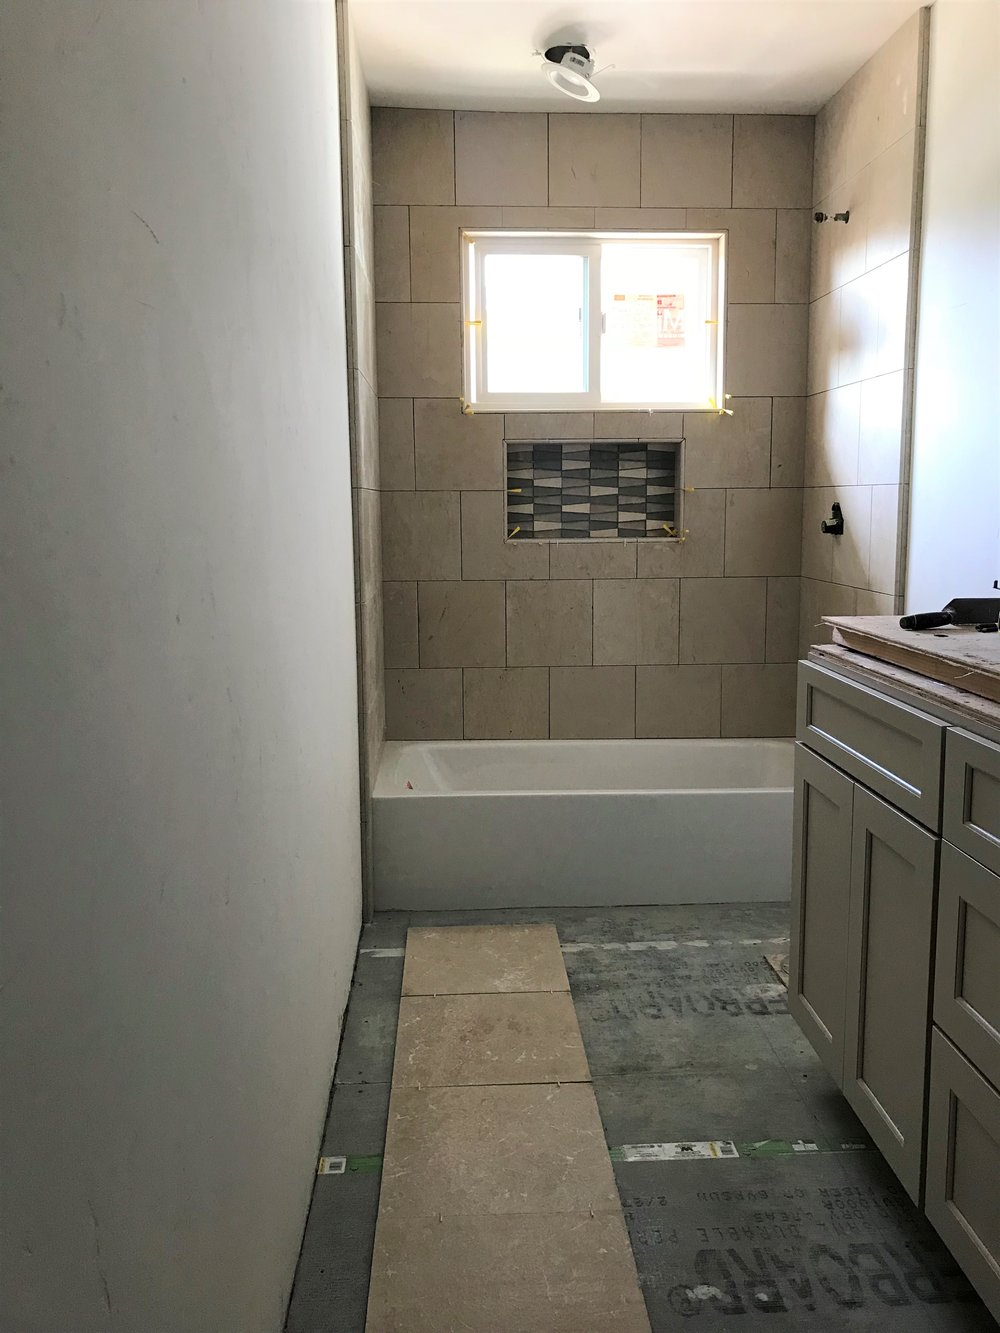 Floor Tile Layout